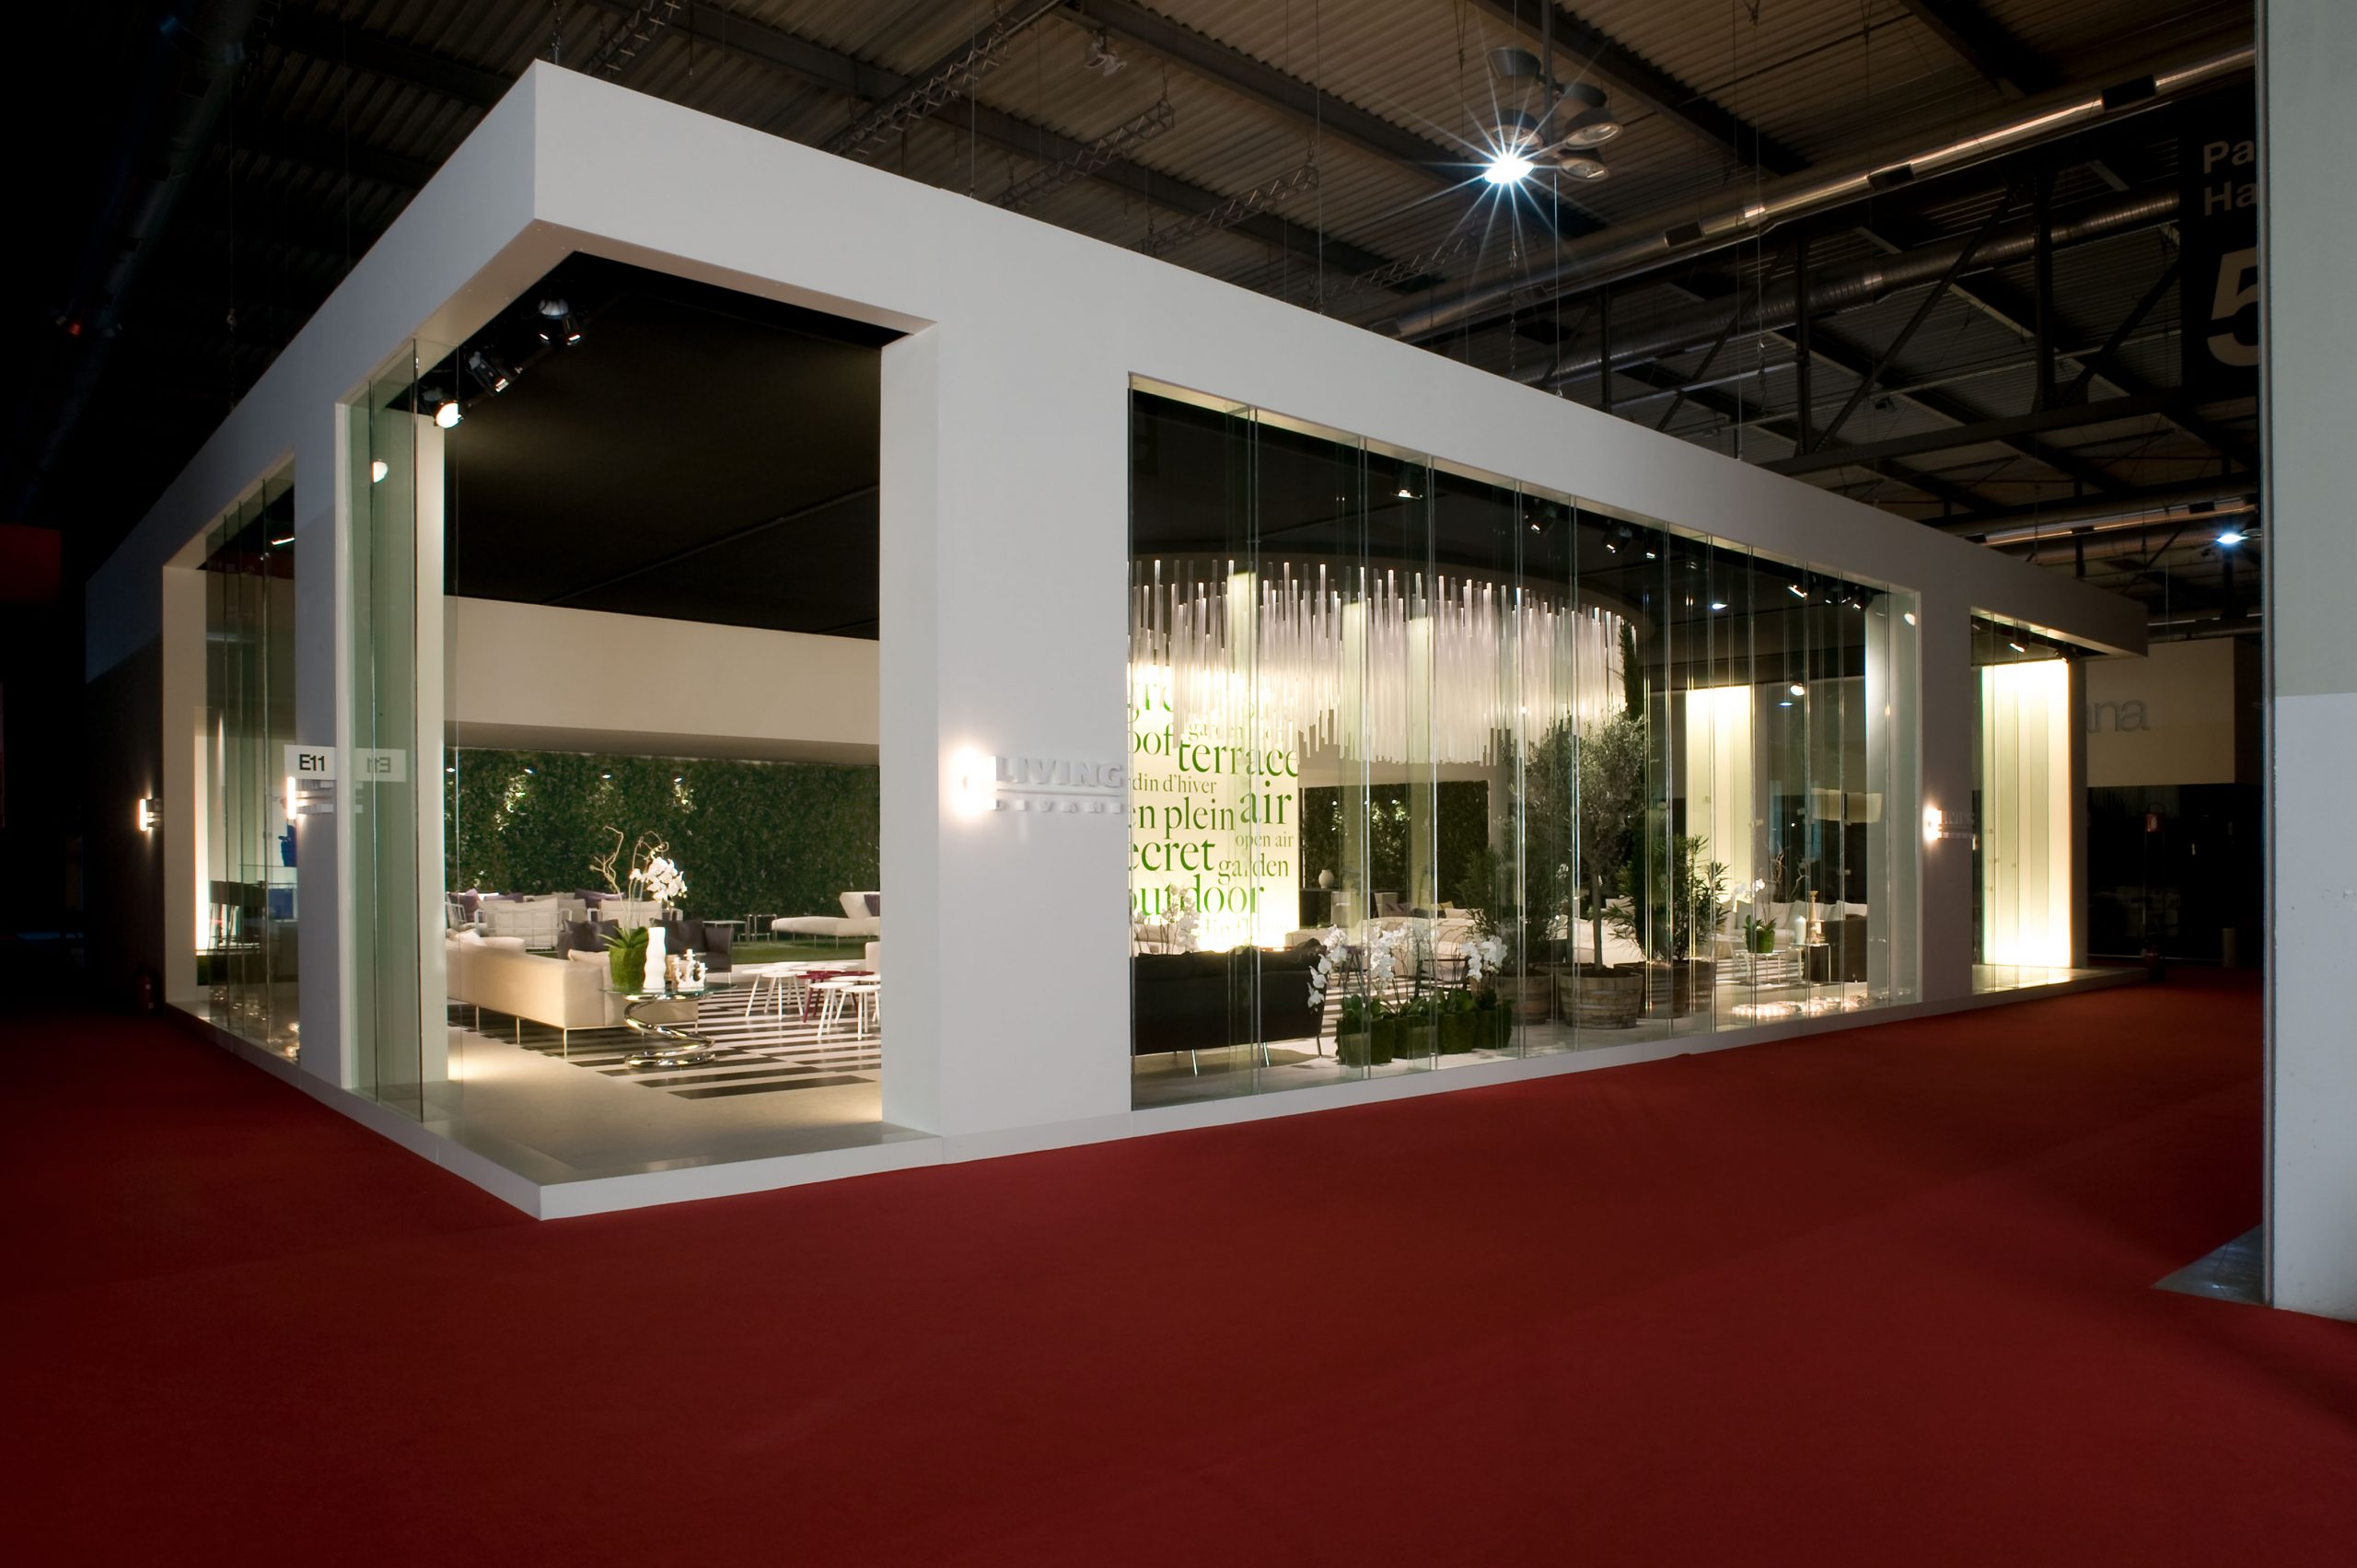 1-Living-Salone-2009-CHIMENTI